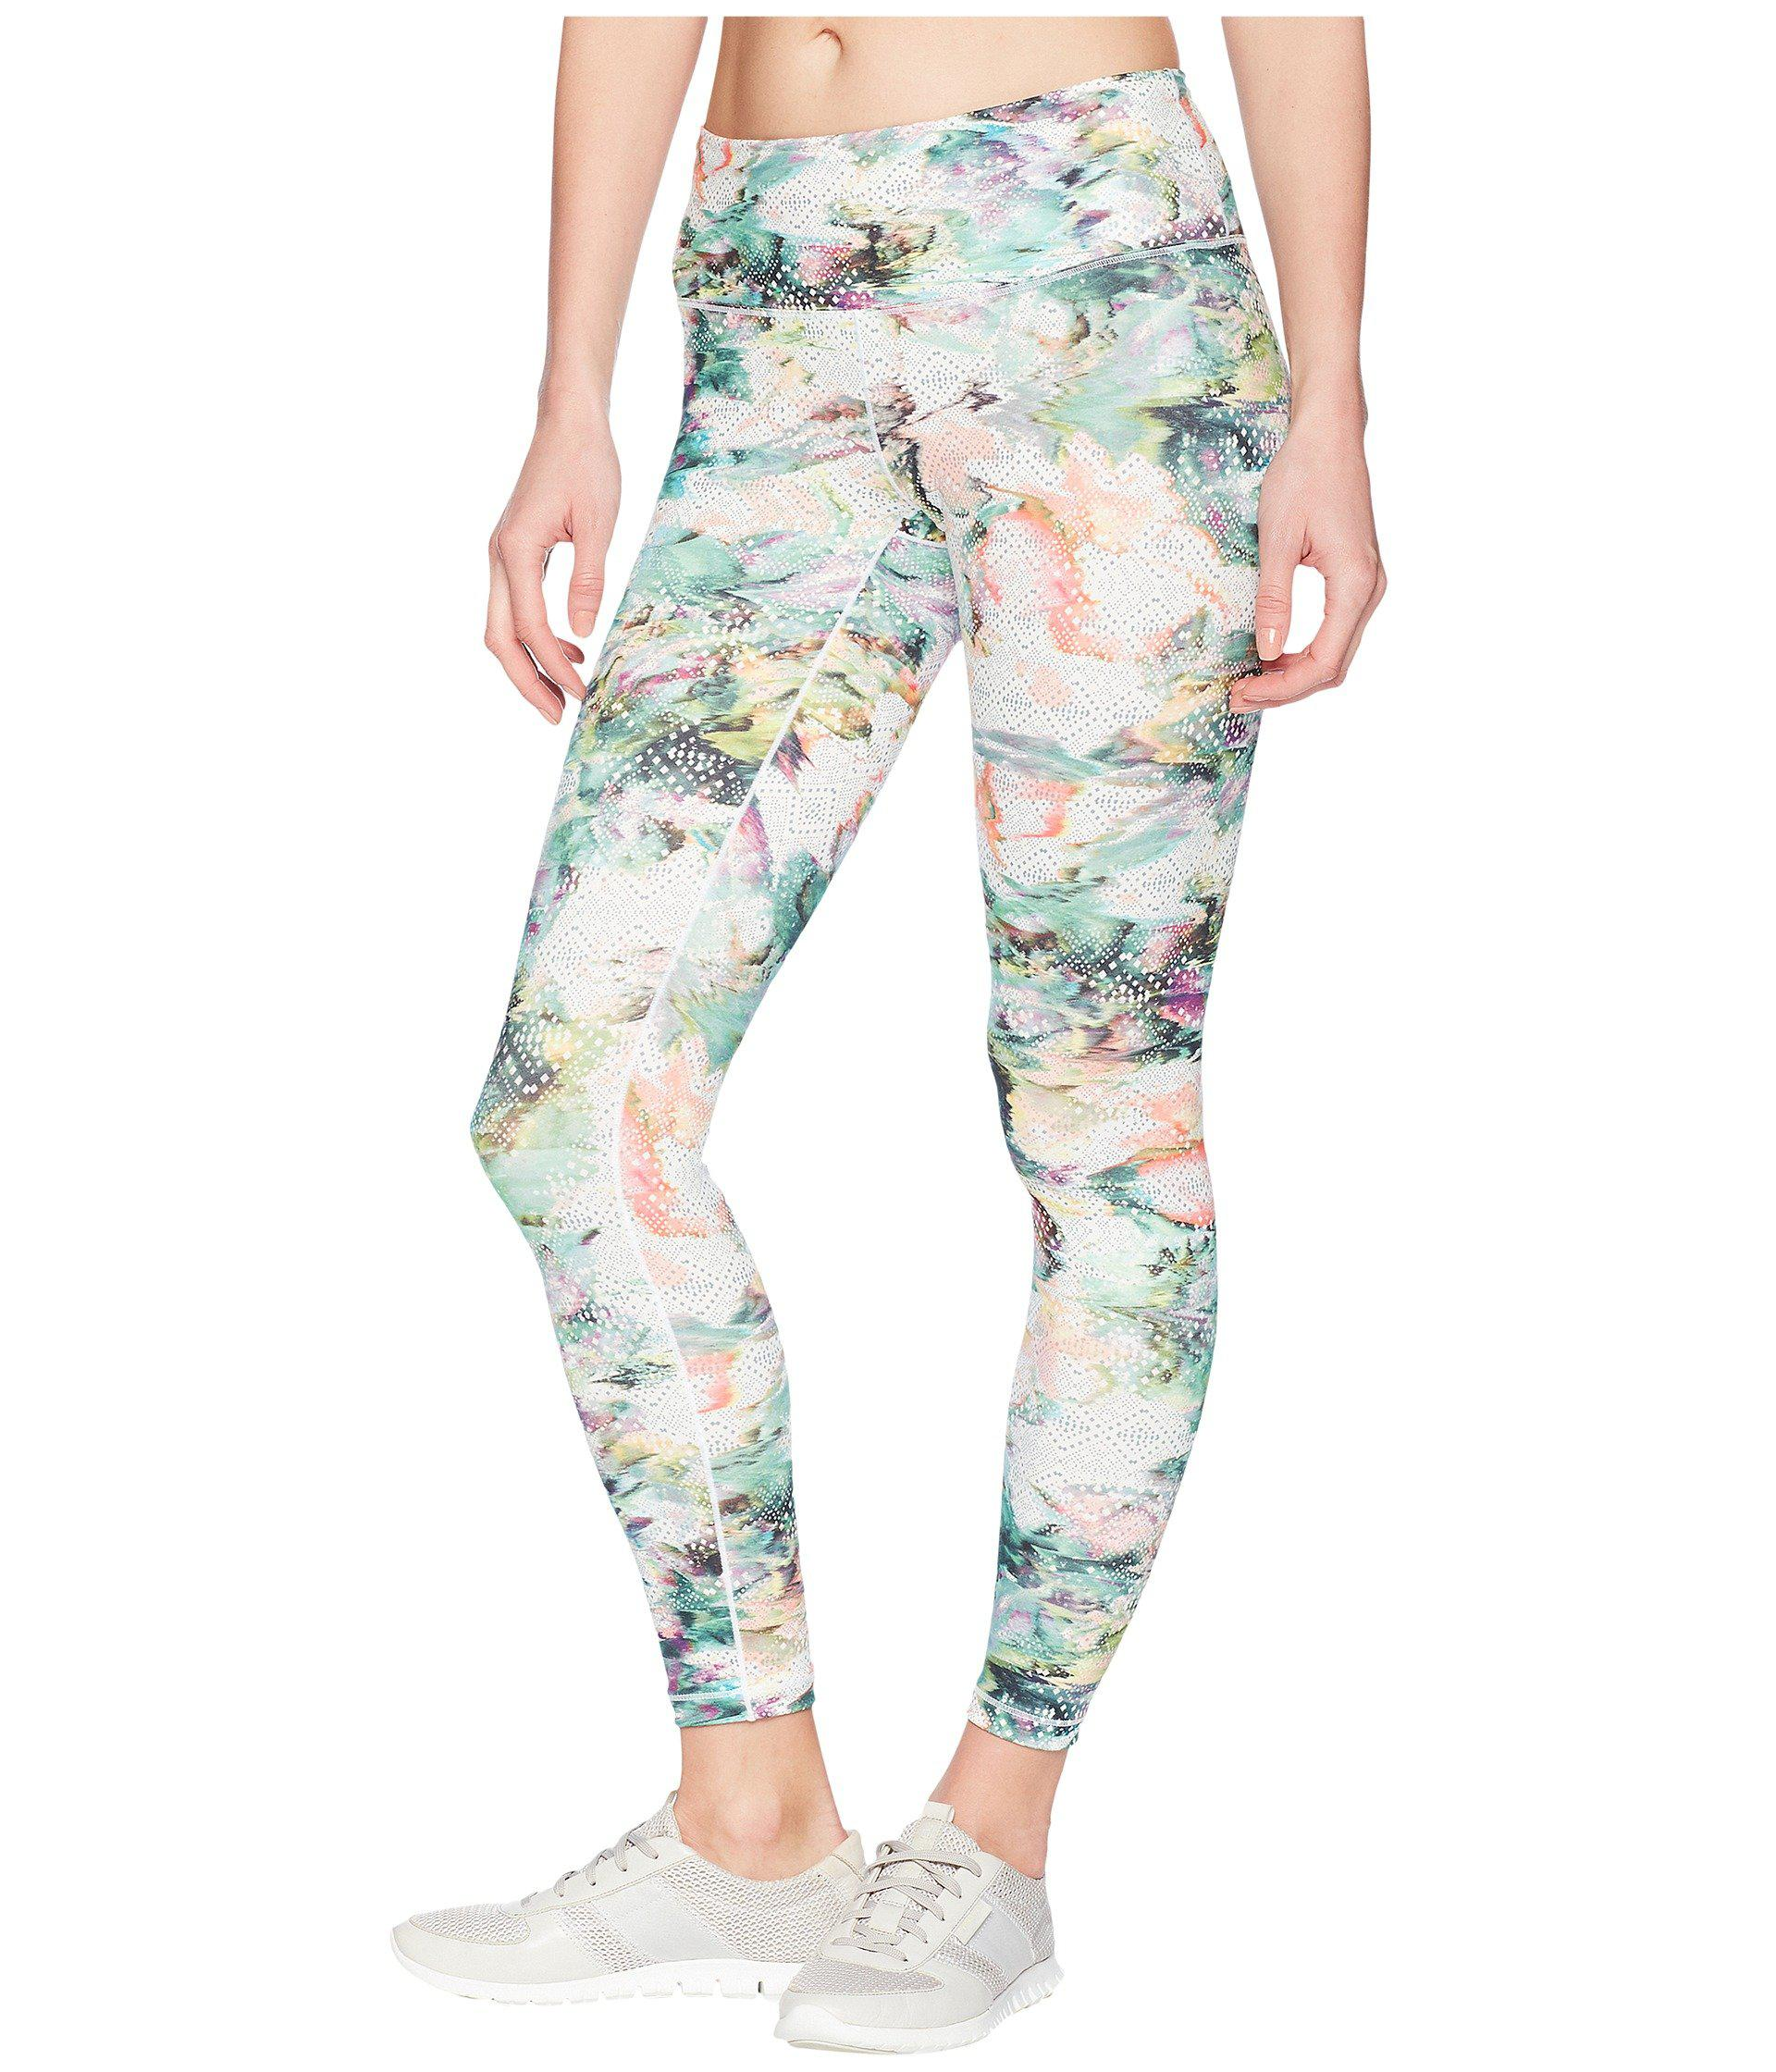 b06d2fe484db3 Lyst - Prana Pillar Printed Leggings - Save 20%